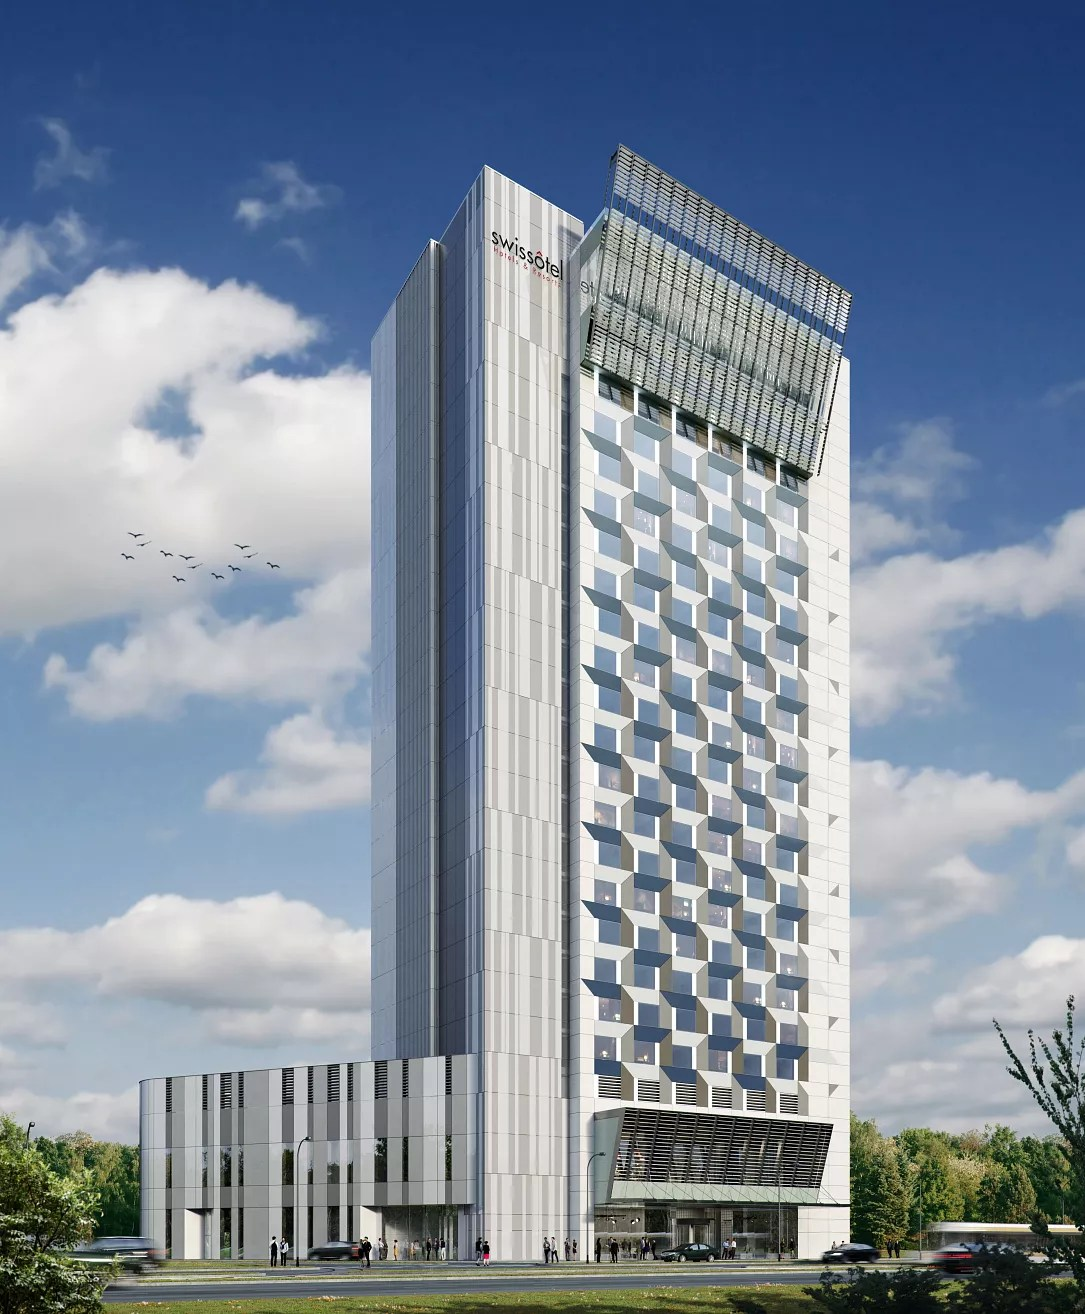 Accor Group French Group Accor Brings Five Star Hotel Brand On Tallest Hotel